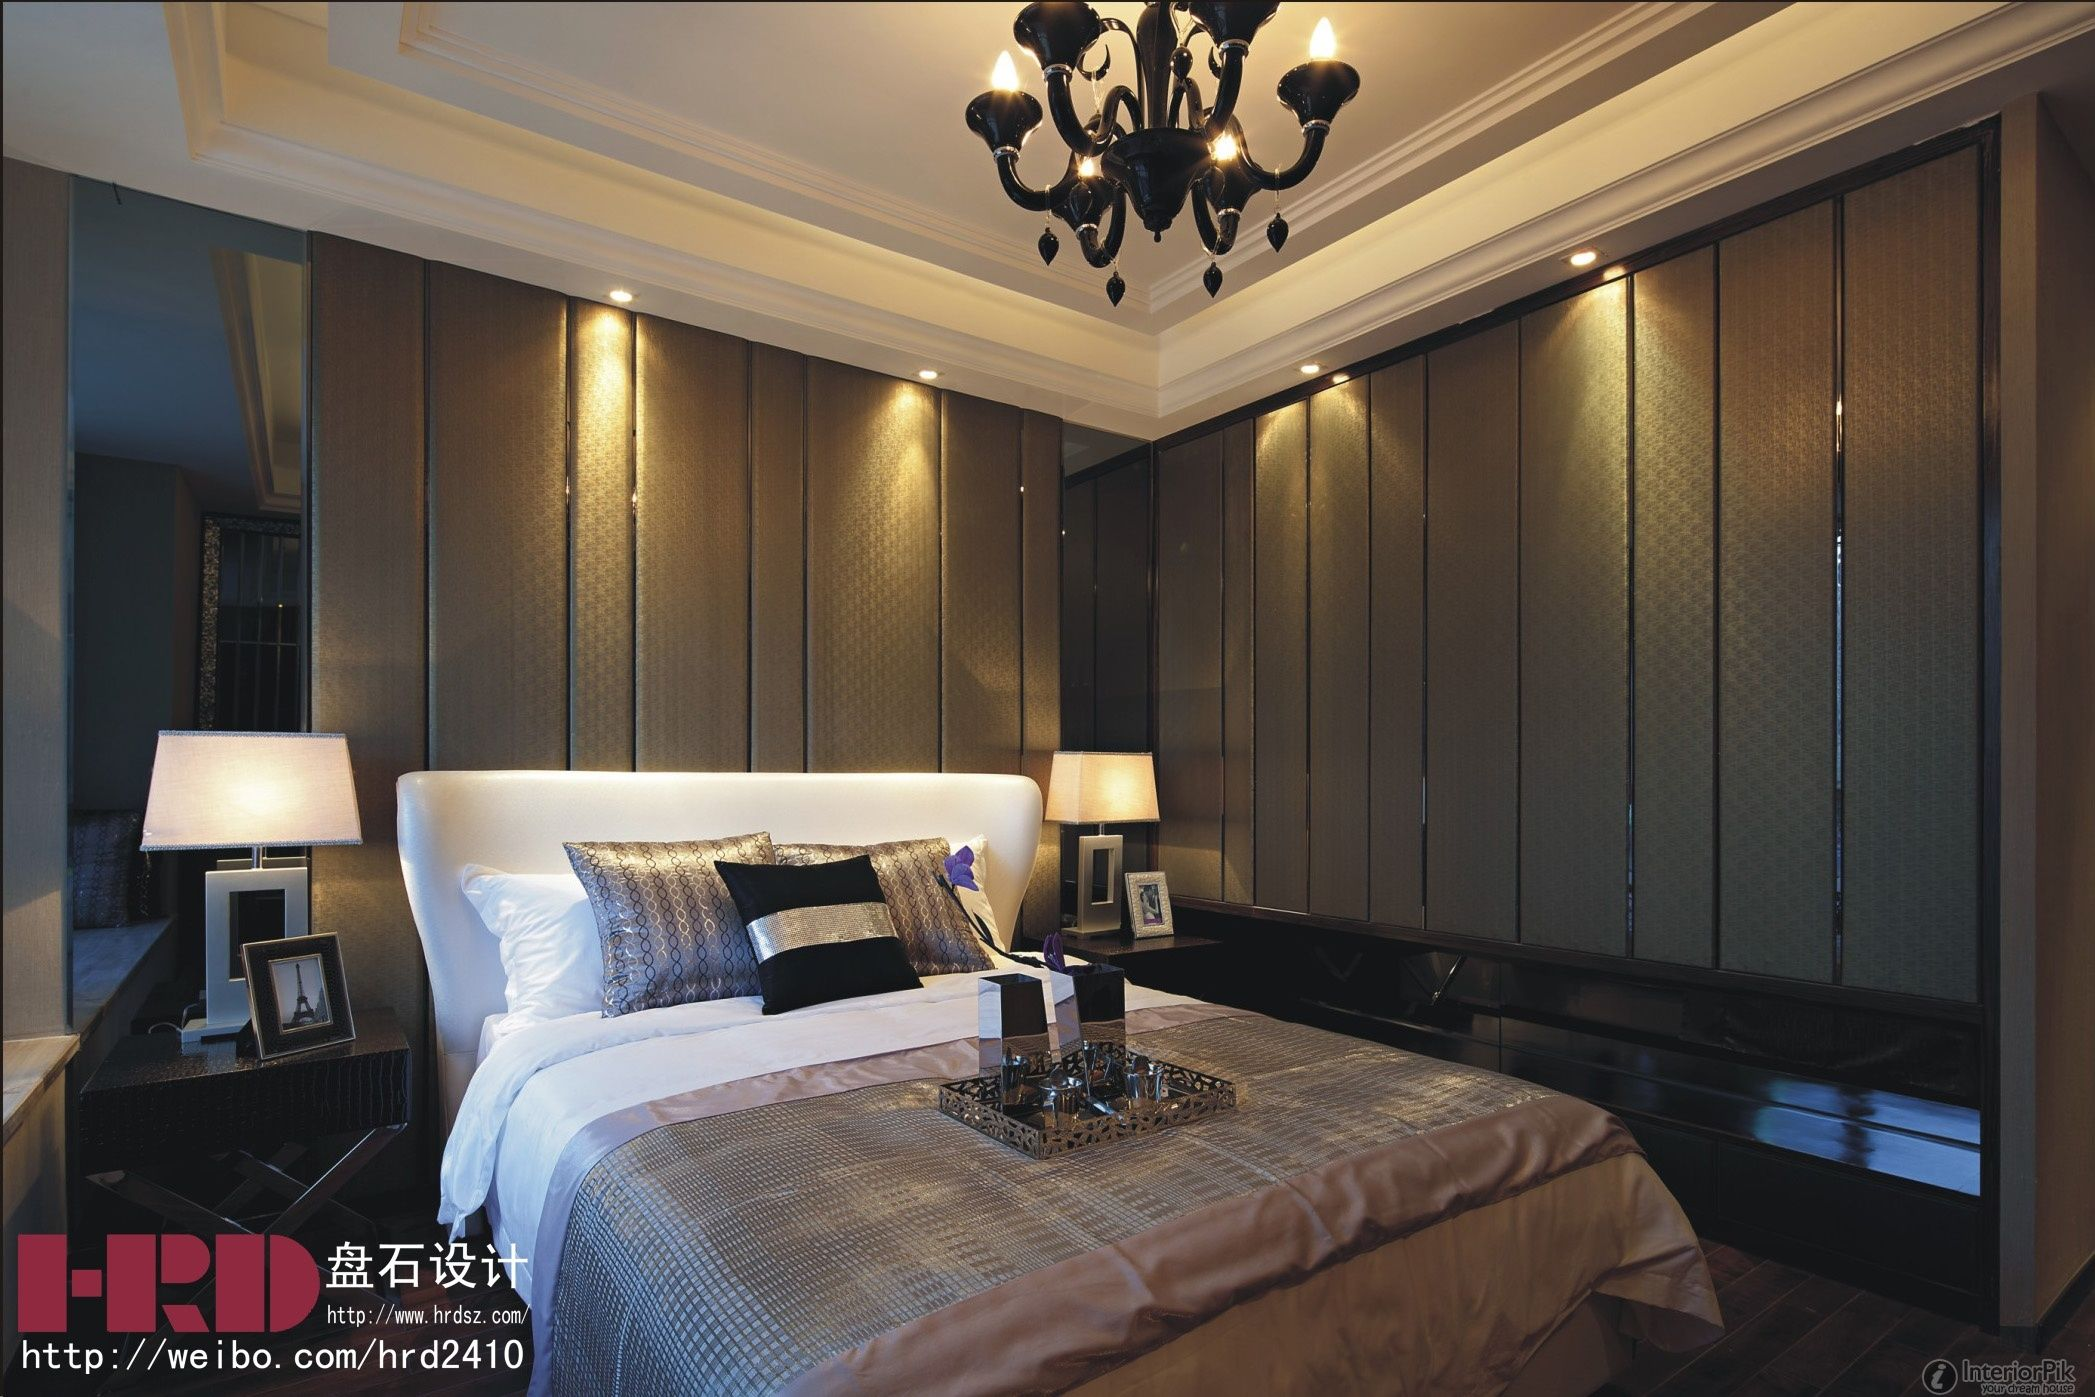 Home.design.collections.4you: Modern Master Bedroom Interior Design Modern  Bedro.